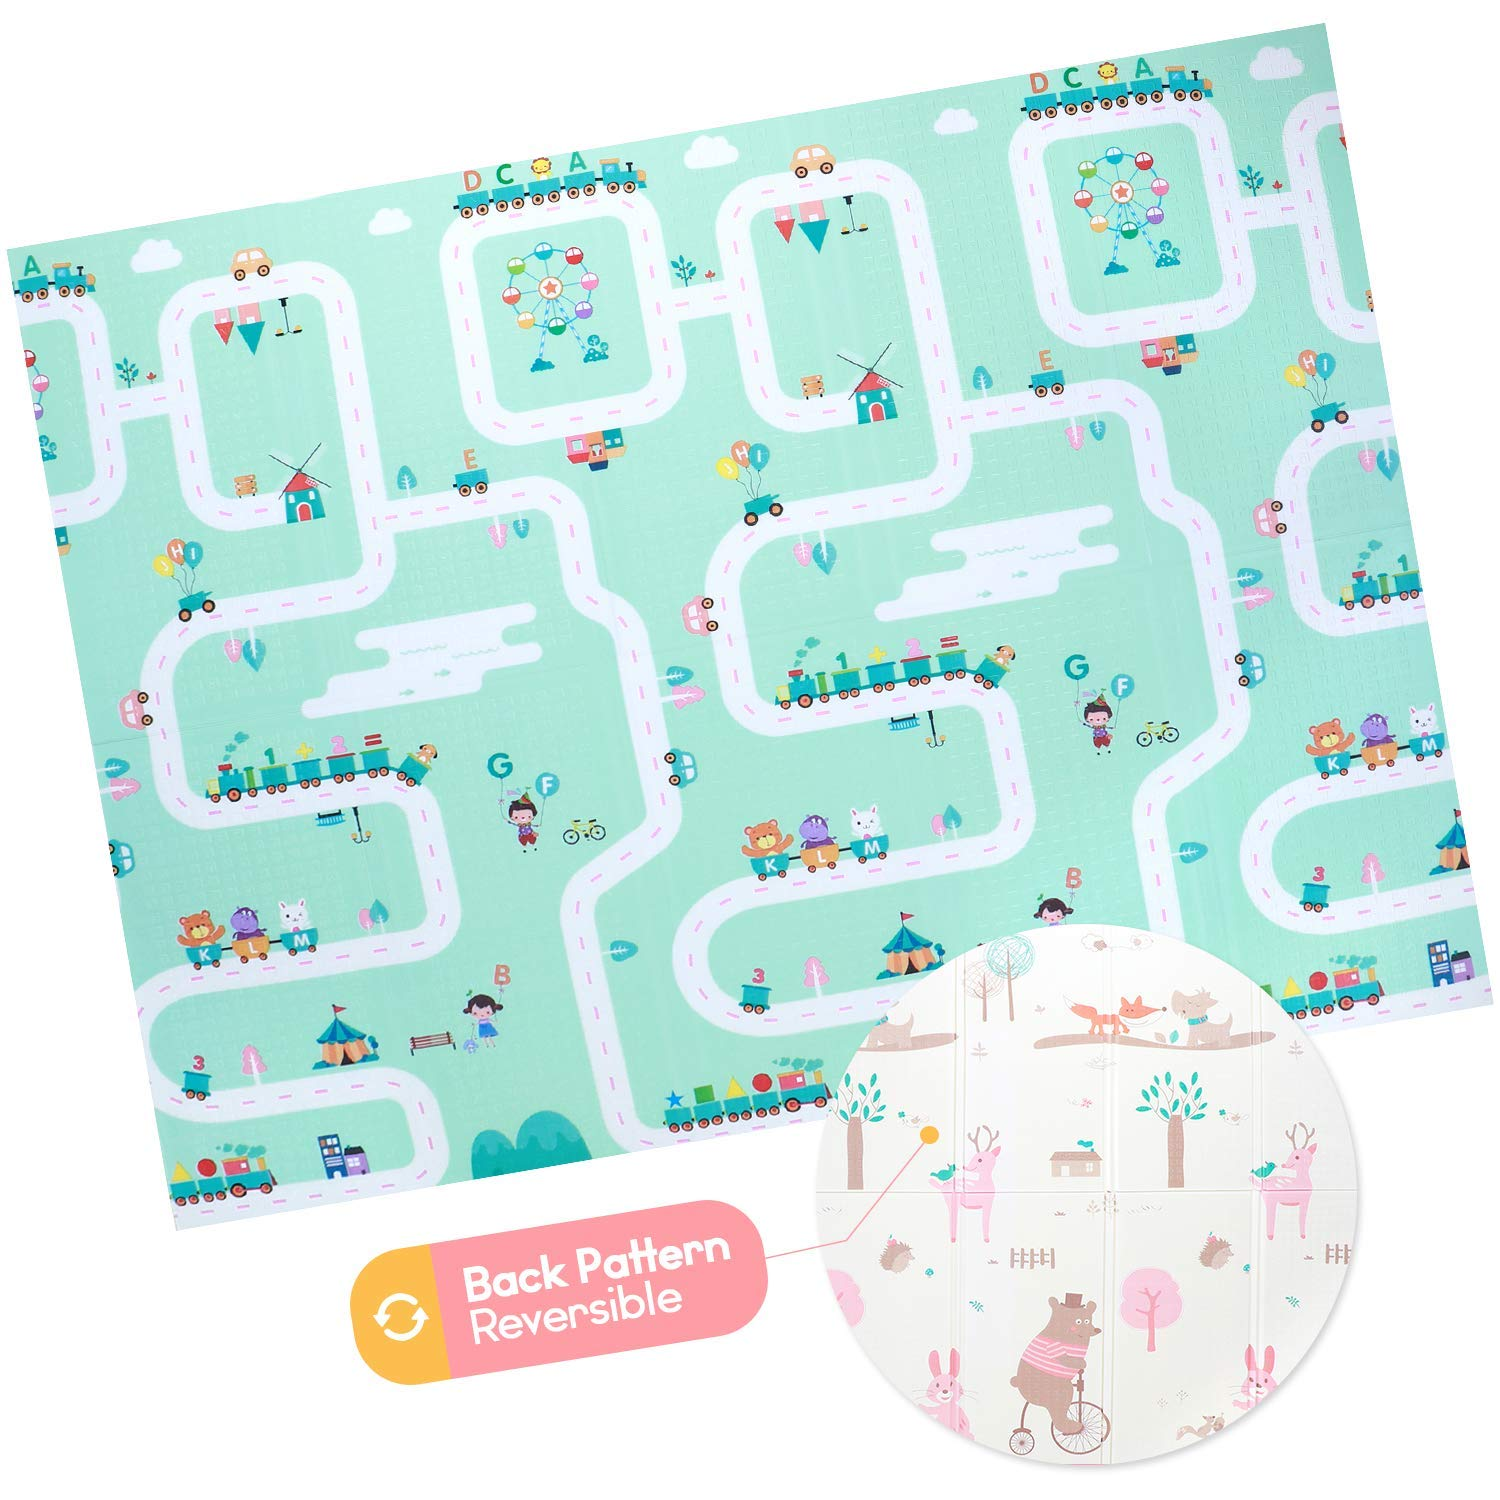 Baby Foam Play Mat - Foldable, Waterproof, Reversible Playmat for Toddlers and Kids Ashtonbee